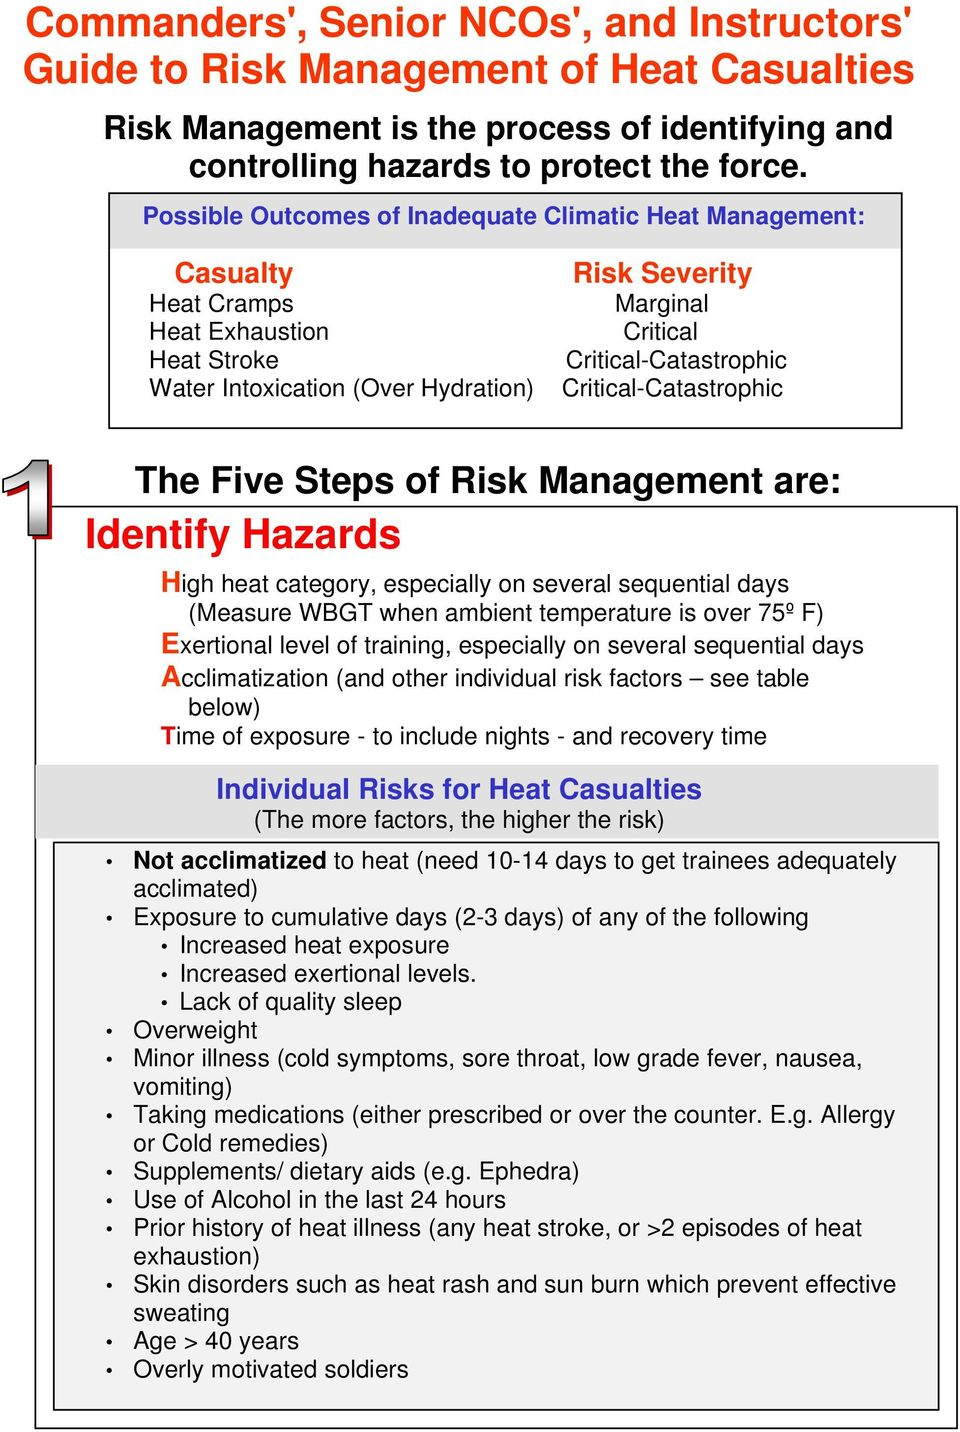 Critical-Catastrophic The Five Steps of Risk Management are: Identify Hazards High heat category, especially on several sequential days (Measure WBGT when ambient temperature is over 75º F)